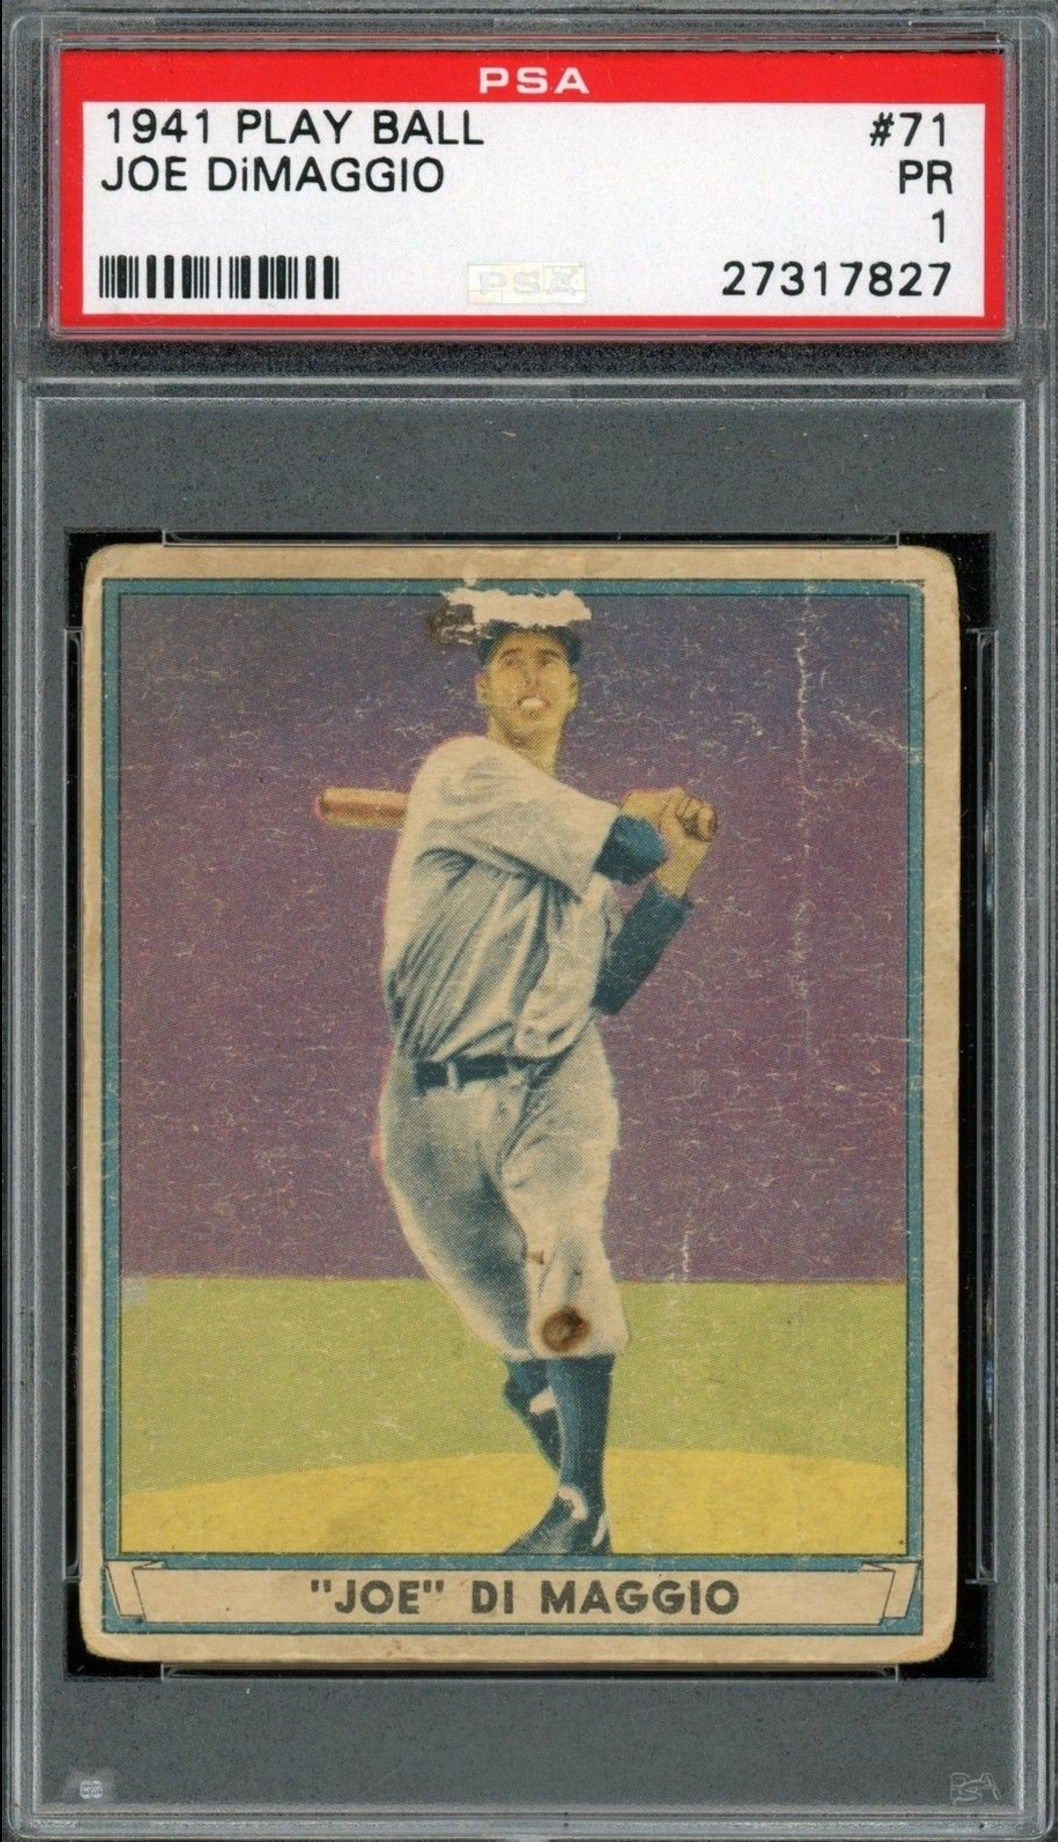 1941 Play Ball 41 Joe Dimaggio Baseball Card Graded Psa 1